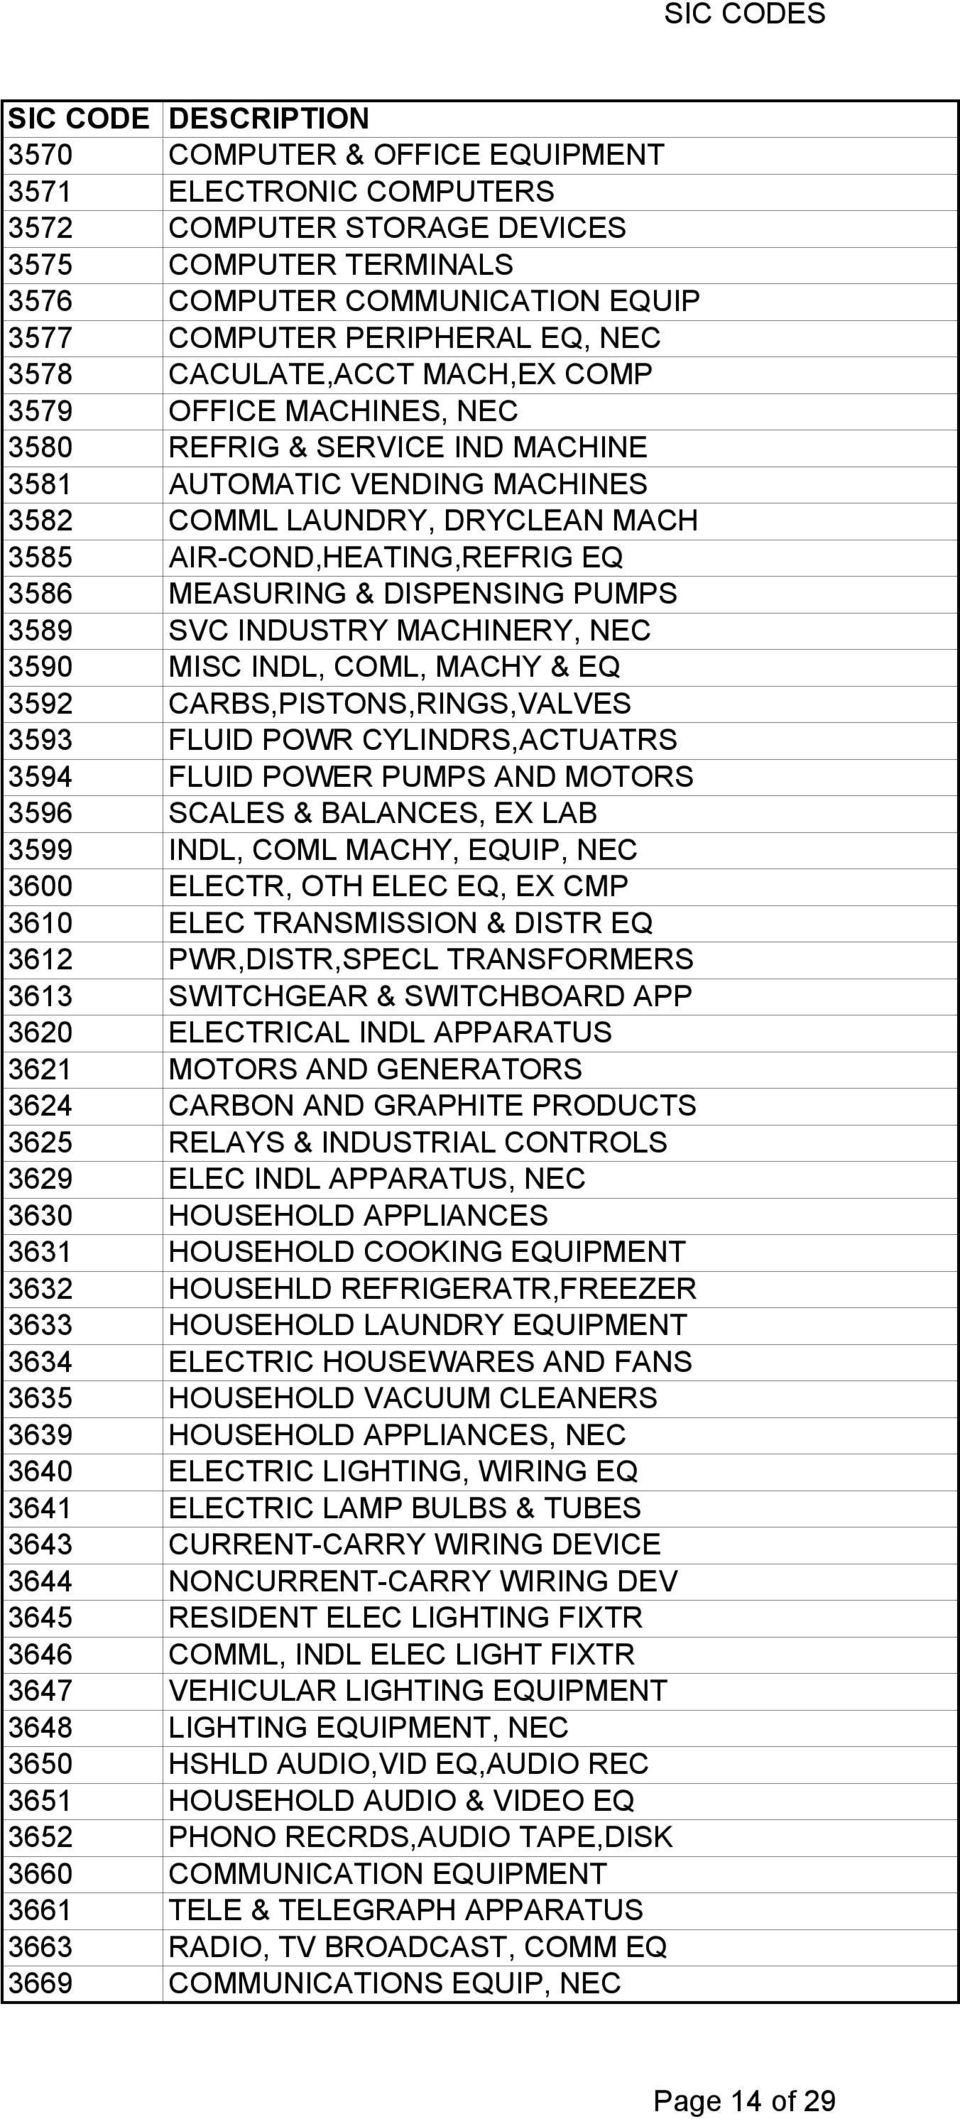 PUMPS 3589 SVC INDUSTRY MACHINERY, NEC 3590 MISC INDL, COML, MACHY & EQ 3592 CARBS,PISTONS,RINGS,VALVES 3593 FLUID POWR CYLINDRS,ACTUATRS 3594 FLUID POWER PUMPS AND MOTORS 3596 SCALES & BALANCES, EX